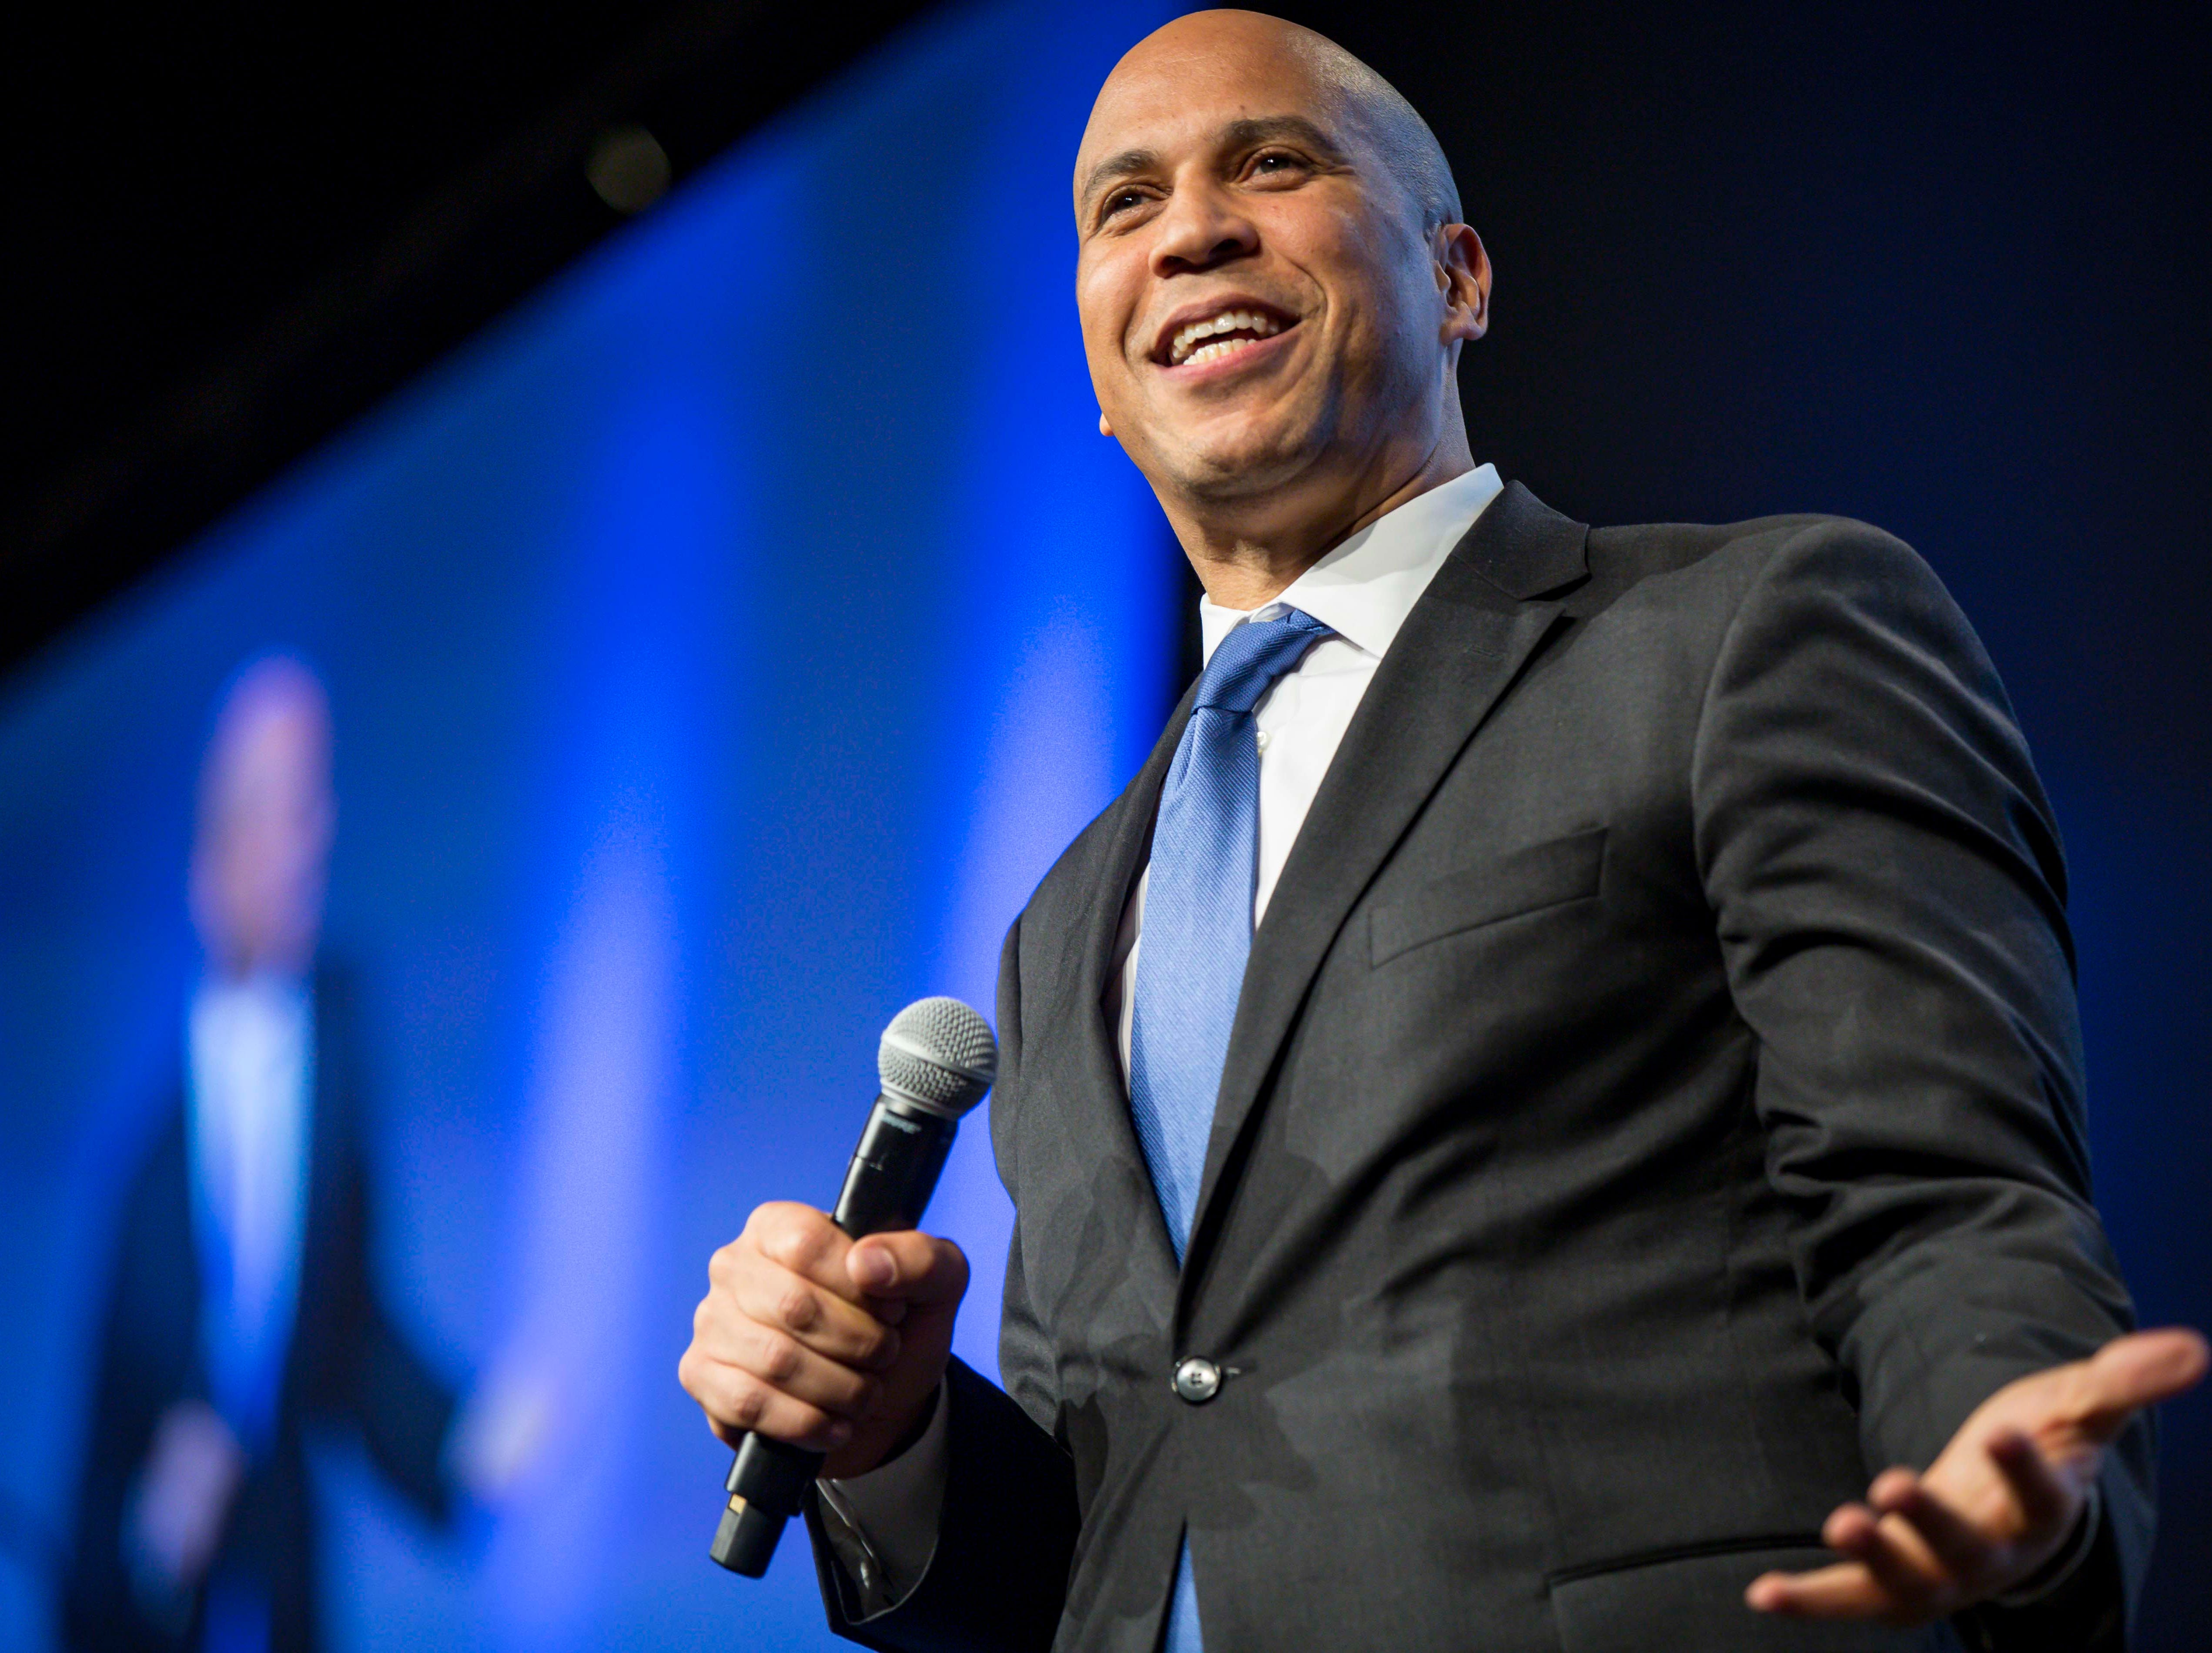 New Jersey Sen. Cory Booker speaks at the Iowa Democratic Party's fall gala Saturday, Oct. 6, 2018, at the Iowa Events Center in Des Moines.